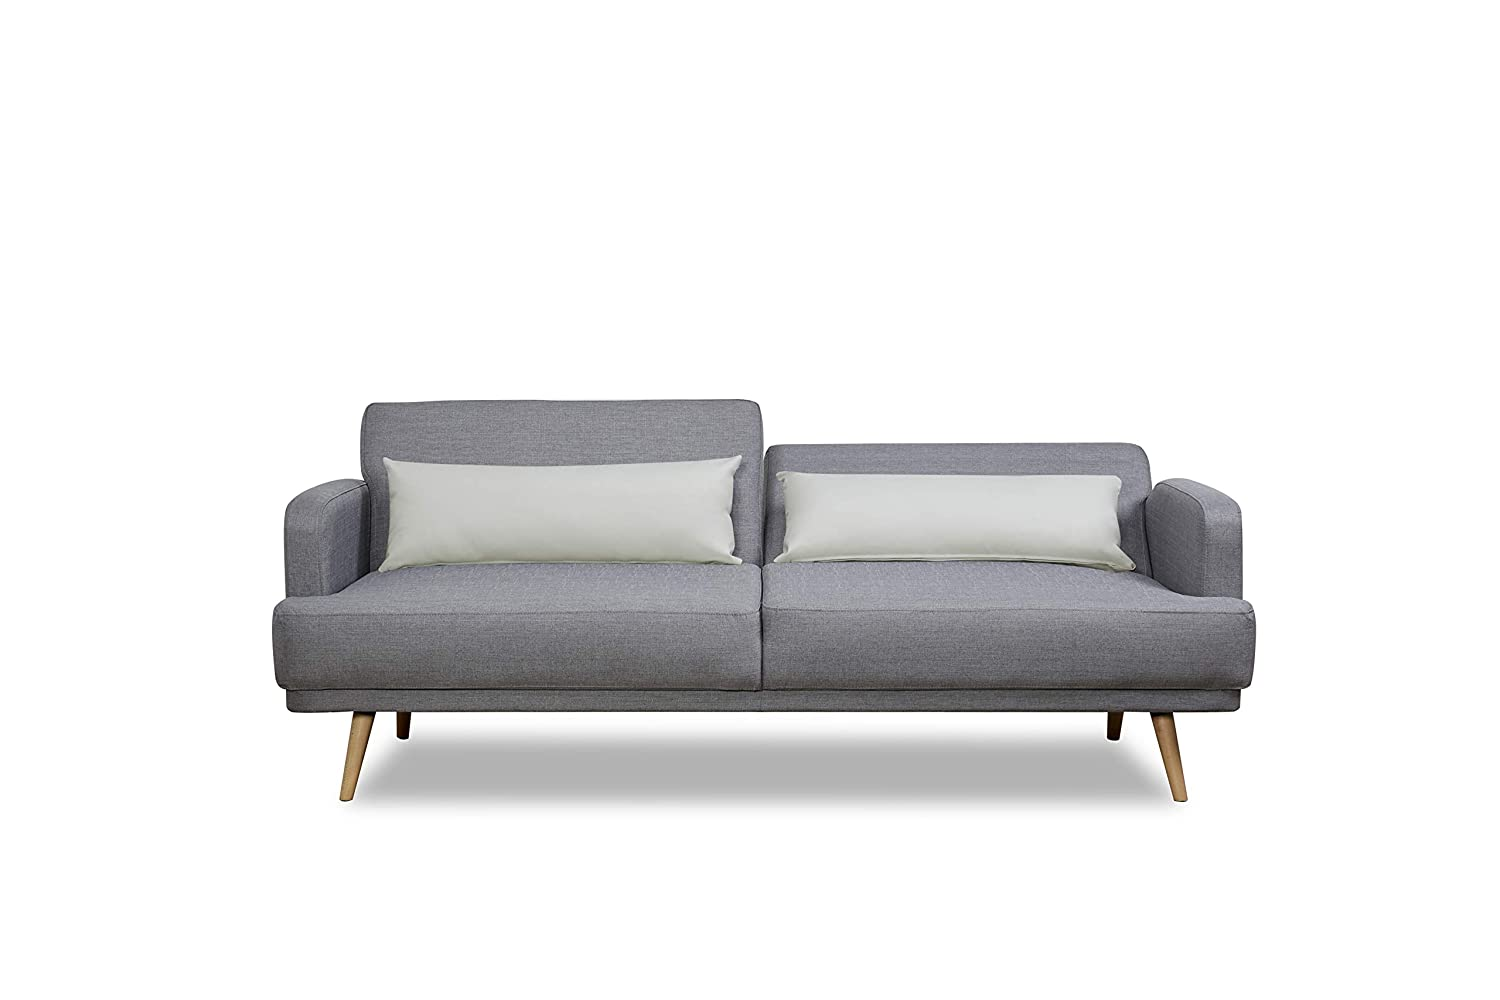 Stupendous Leader Lifestyle Dante Sofa Bed In Aston Grey Fabric With Alphanode Cool Chair Designs And Ideas Alphanodeonline